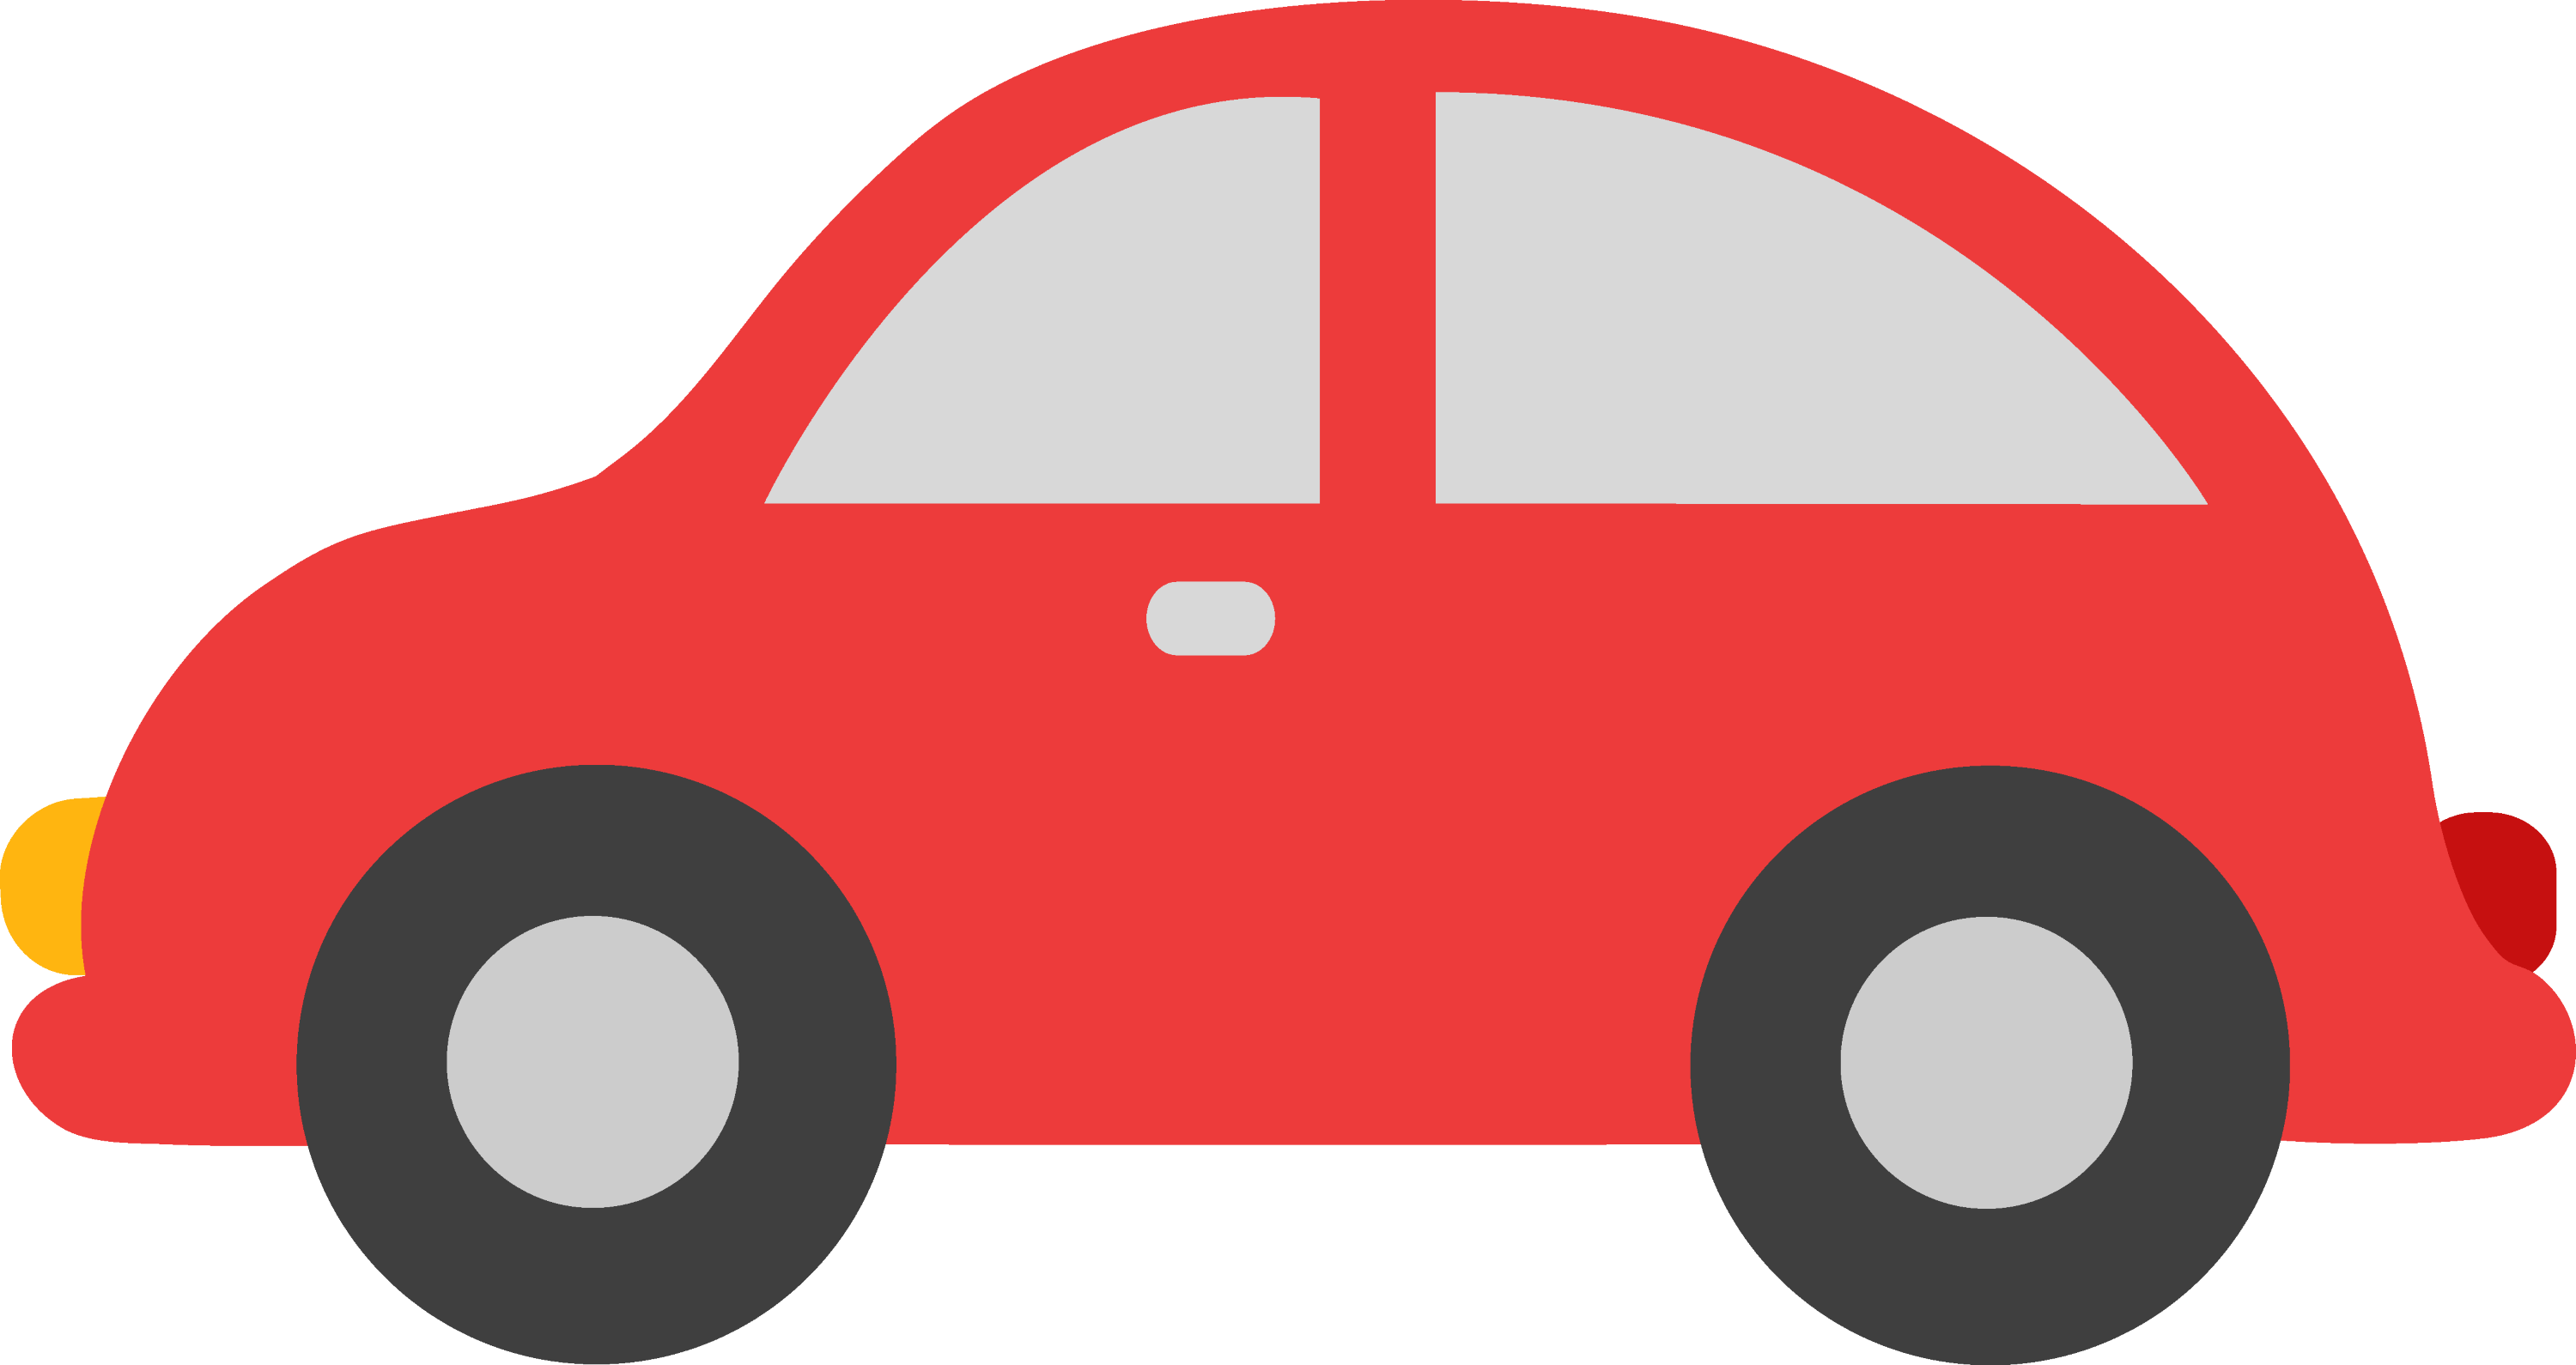 red toy car clipart free clip art rh sweetclipart com clipart of caregiver clipart of cartoon faces